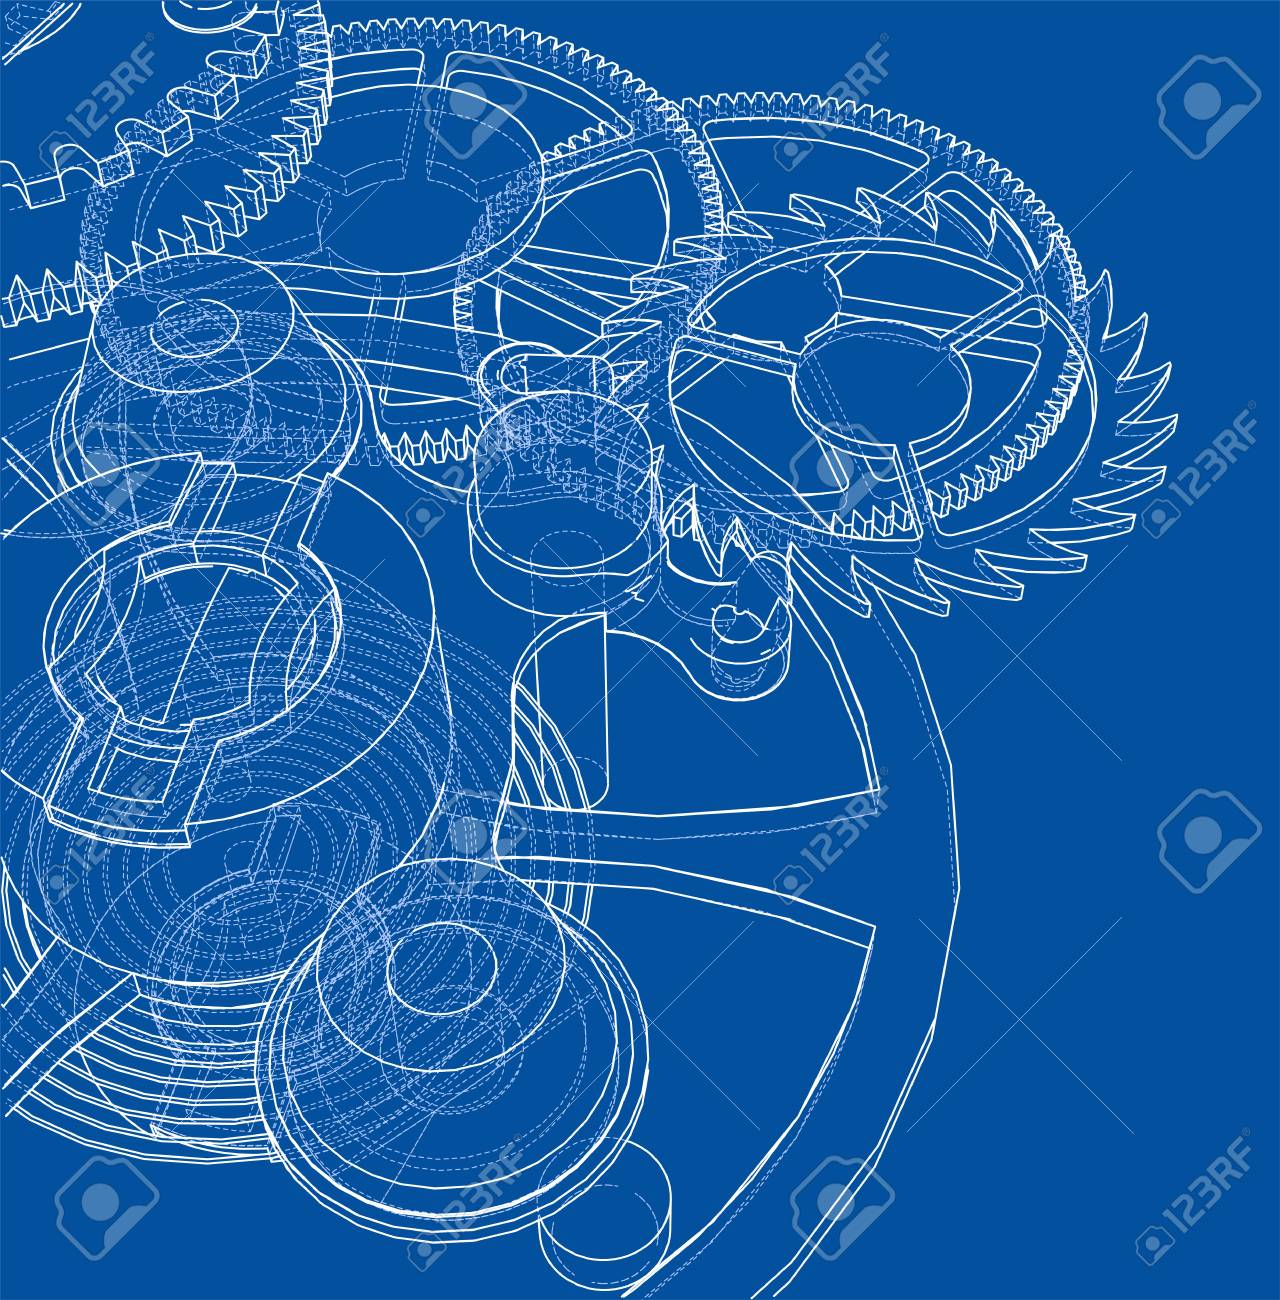 hight resolution of cogs and gears of clock wire frame style on blue background stock vector